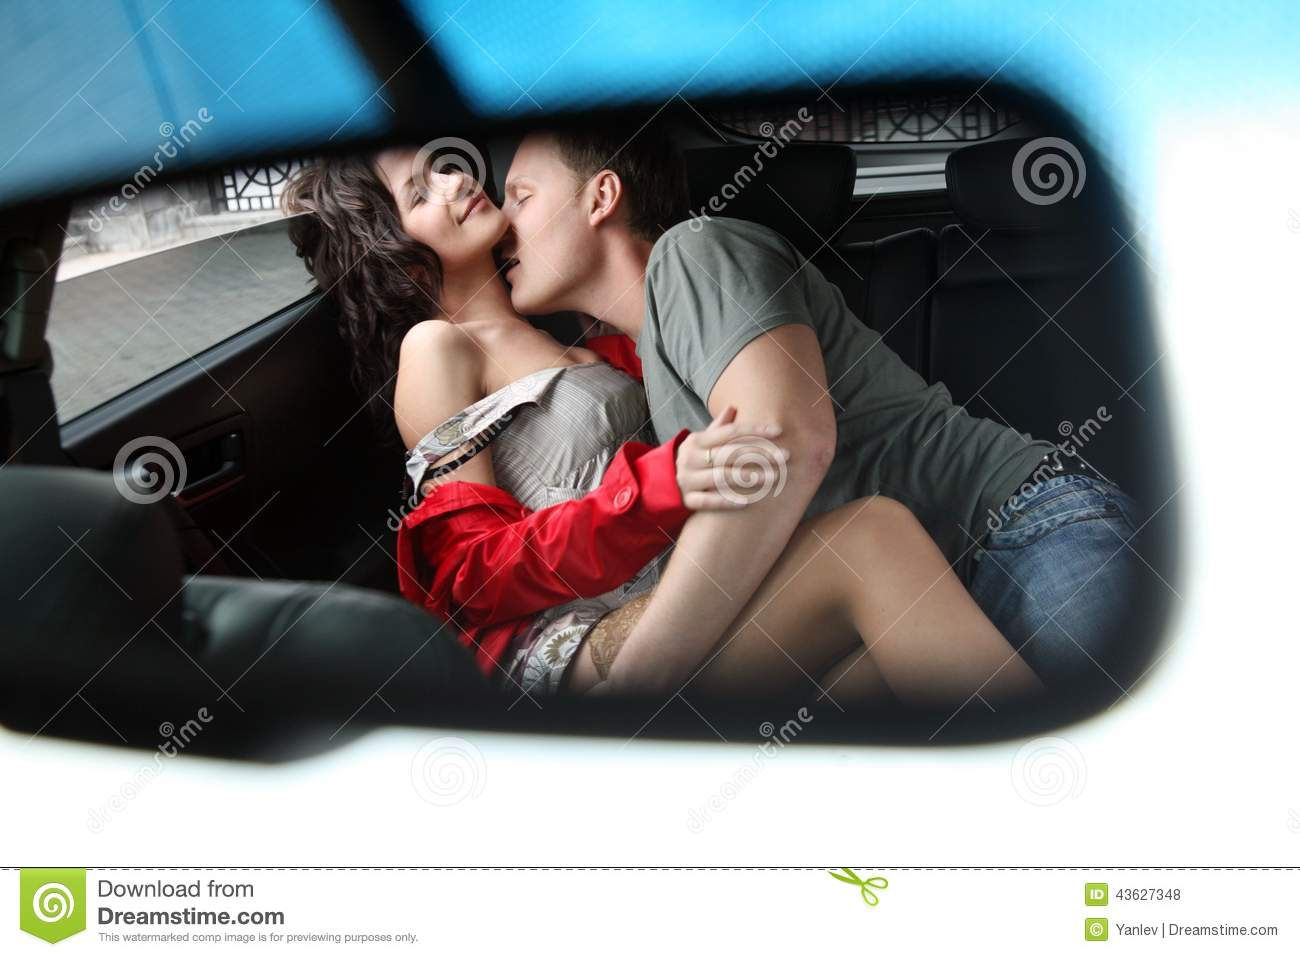 Having Sex In The Car Videos 88